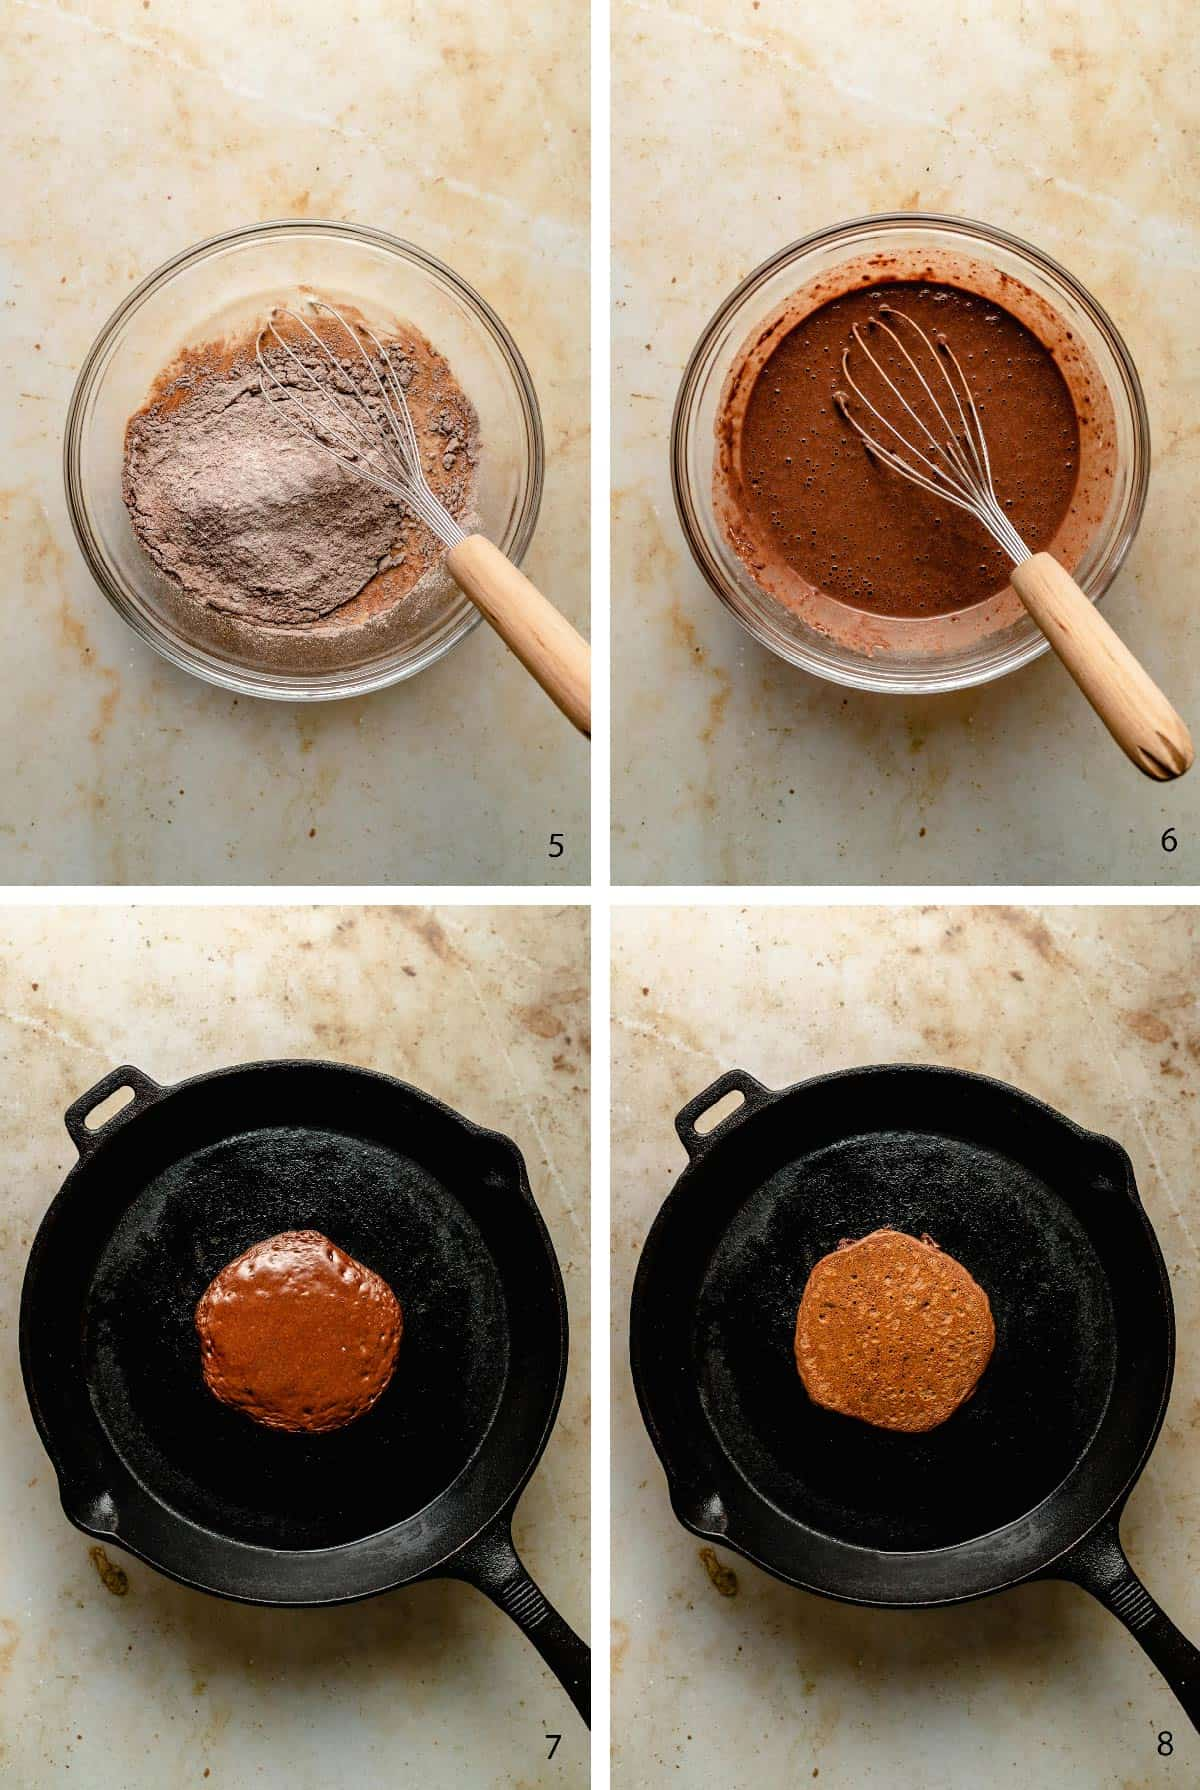 Process steps of cooking the pancakes with cocoa powder in a pan.